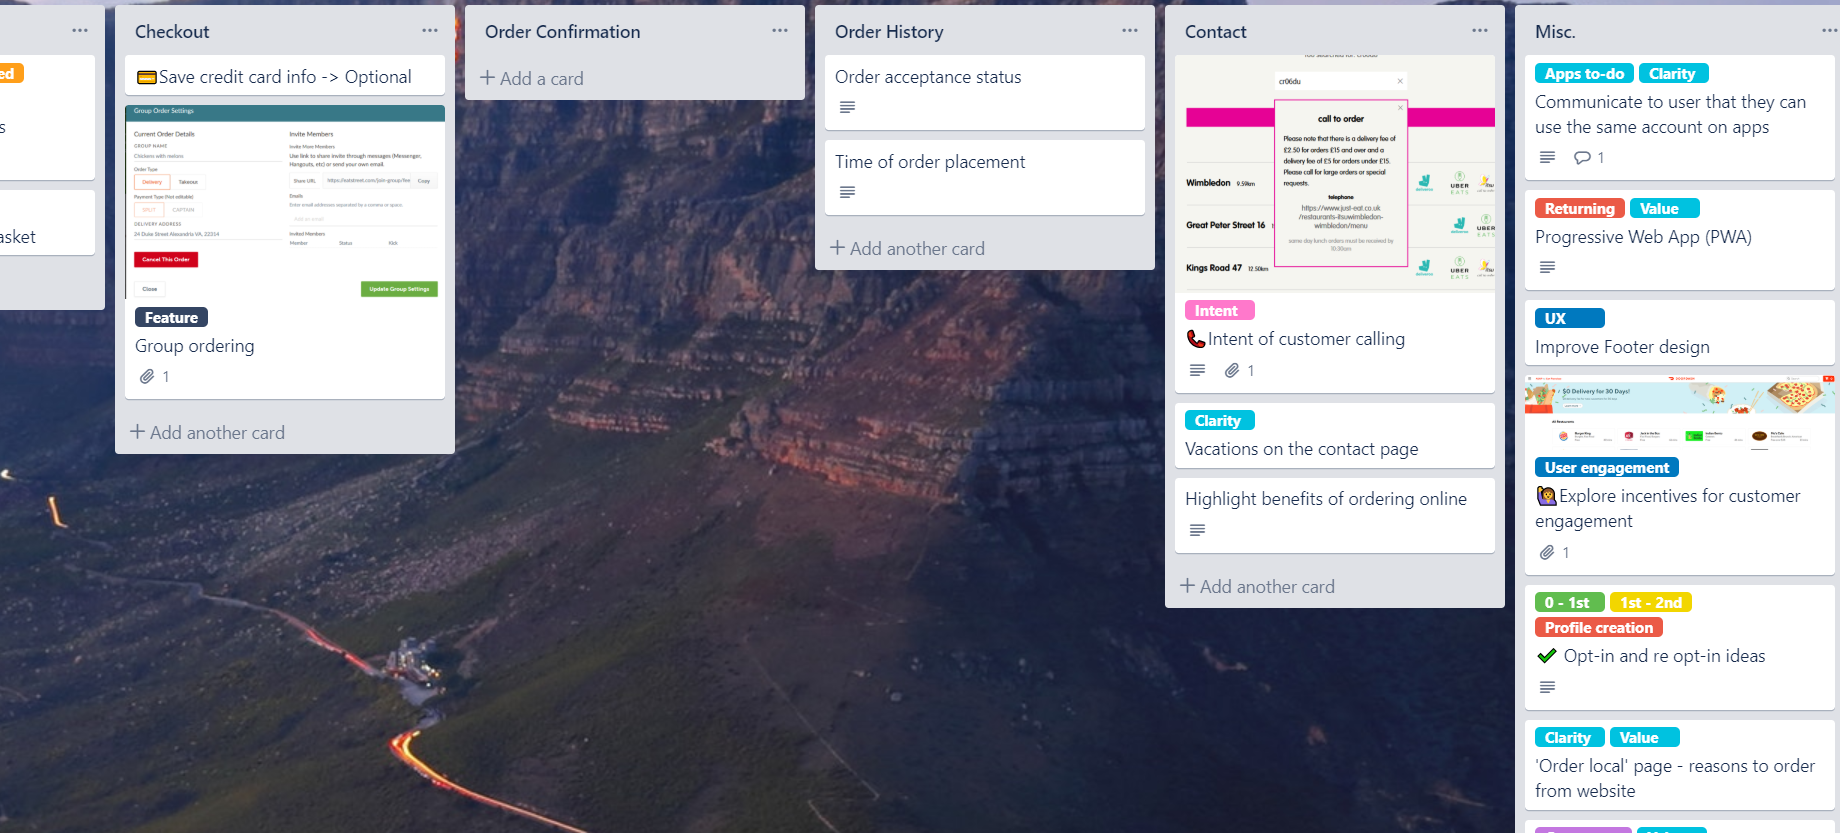 Preview of Trello board used for noting down ideas